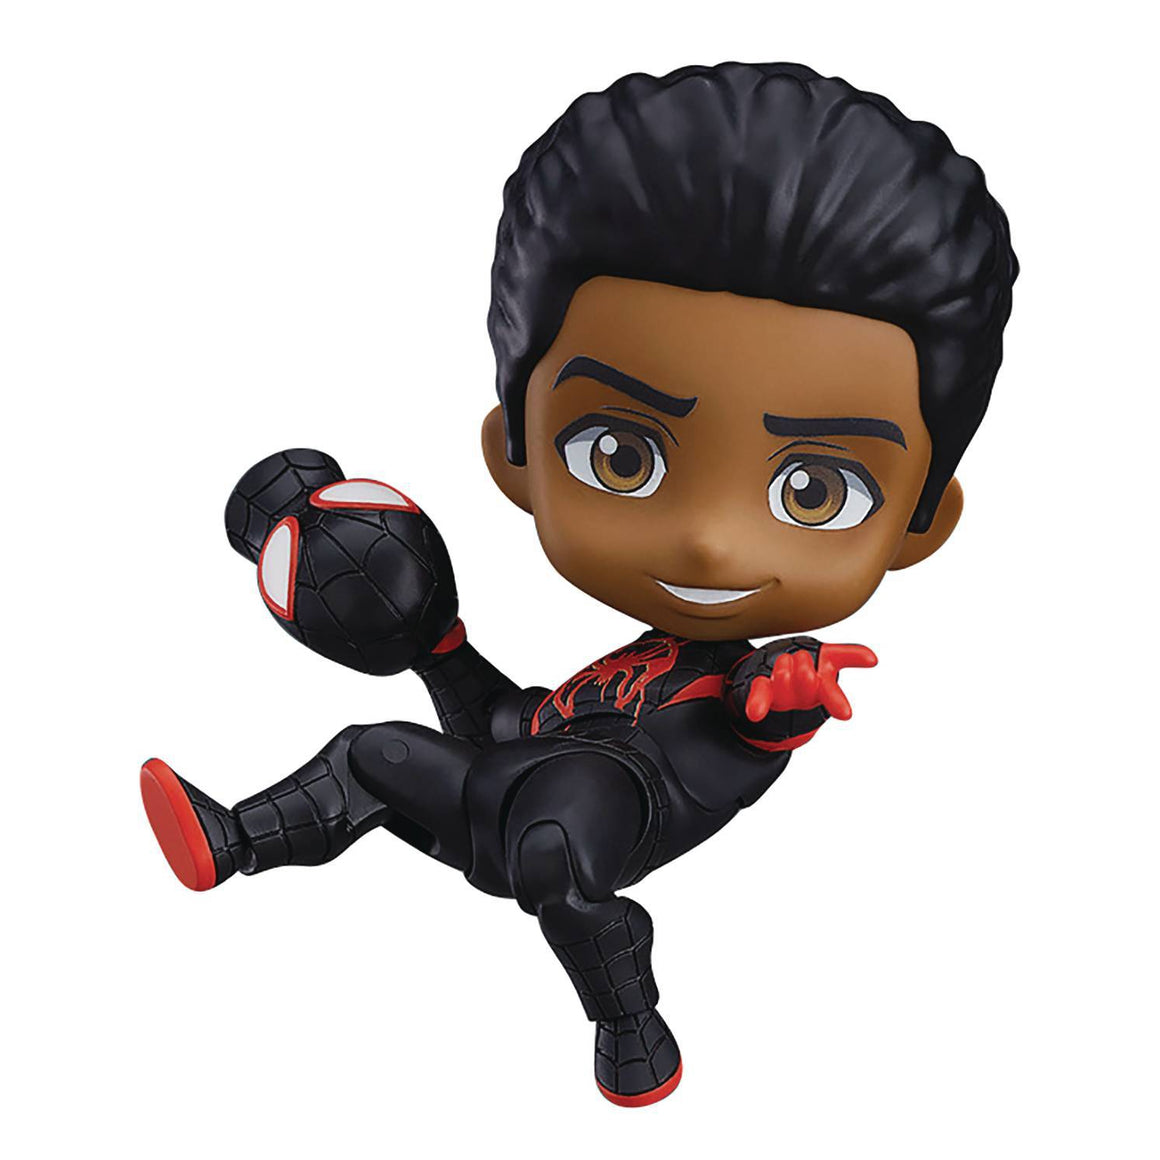 Spider-Man: Into the Spiderverse Miles Morales Nendoroid DX - APRIL 2020